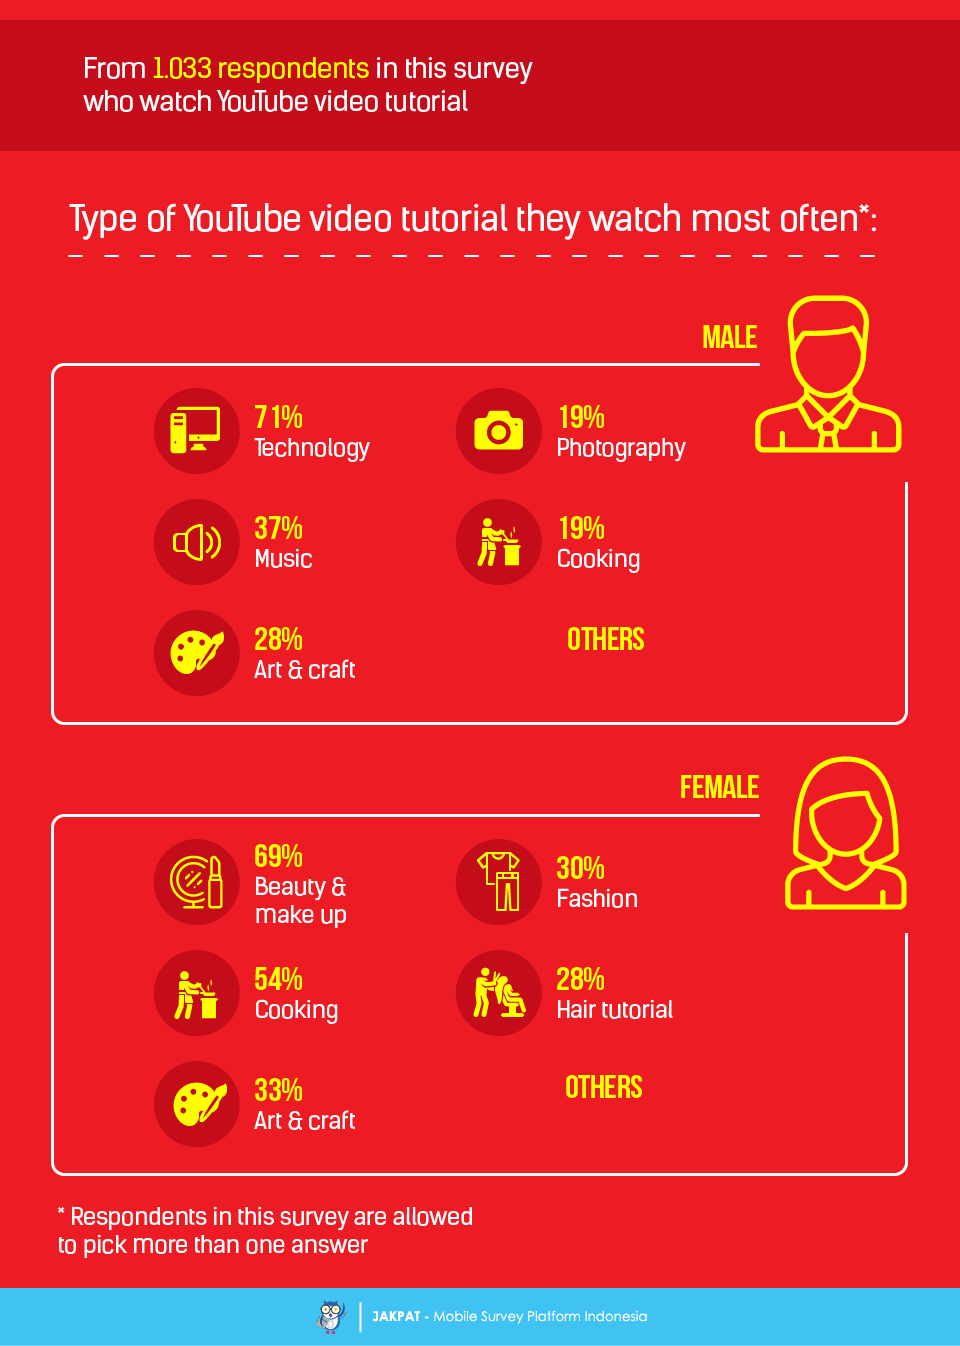 Learn From YouTube: How Do You Watch YouTube Video